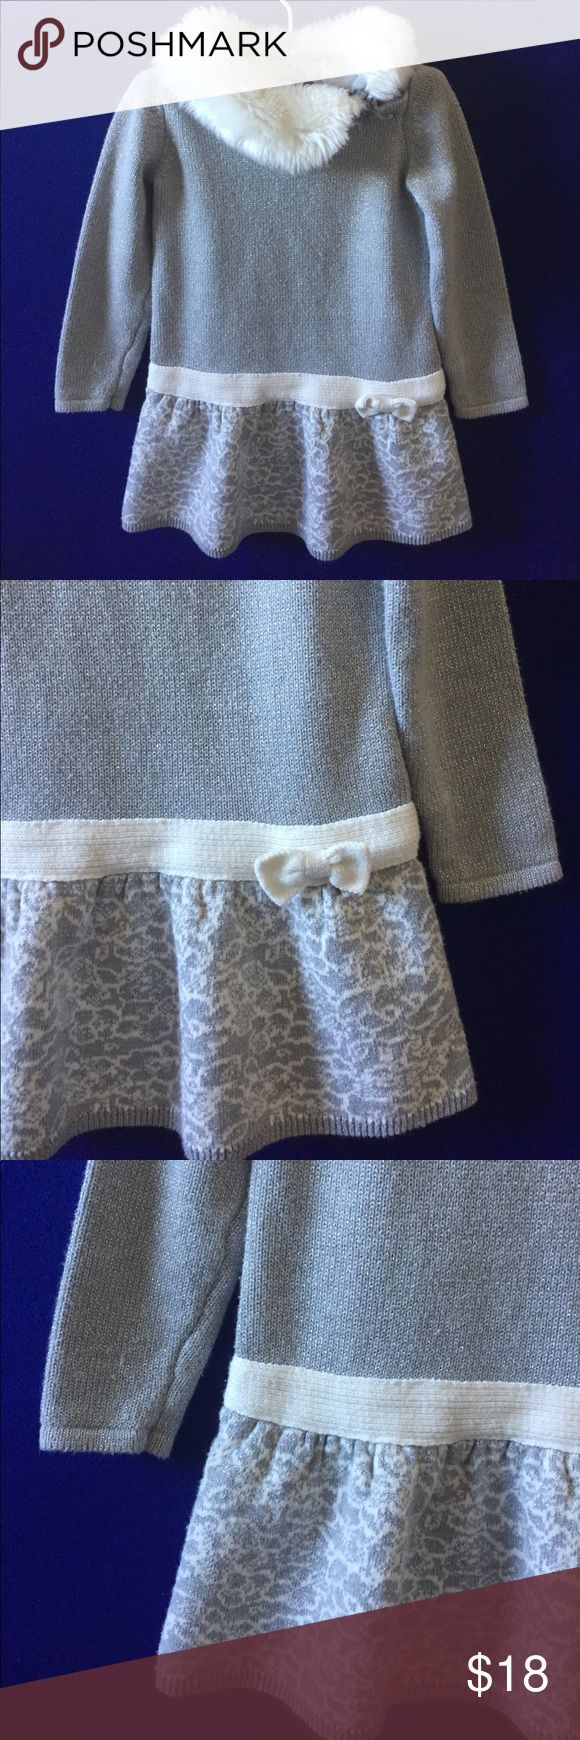 Cynthia Rowley 24M Knit Girls Dress Fur Collar Adorable knit dress from Cynthia Rowley for a girl 24M. In excellent condition, no stains or rips. The fur collar is cute and the Knit overall has silver stands. Very festive Cynthia Rowley Dresses Formal